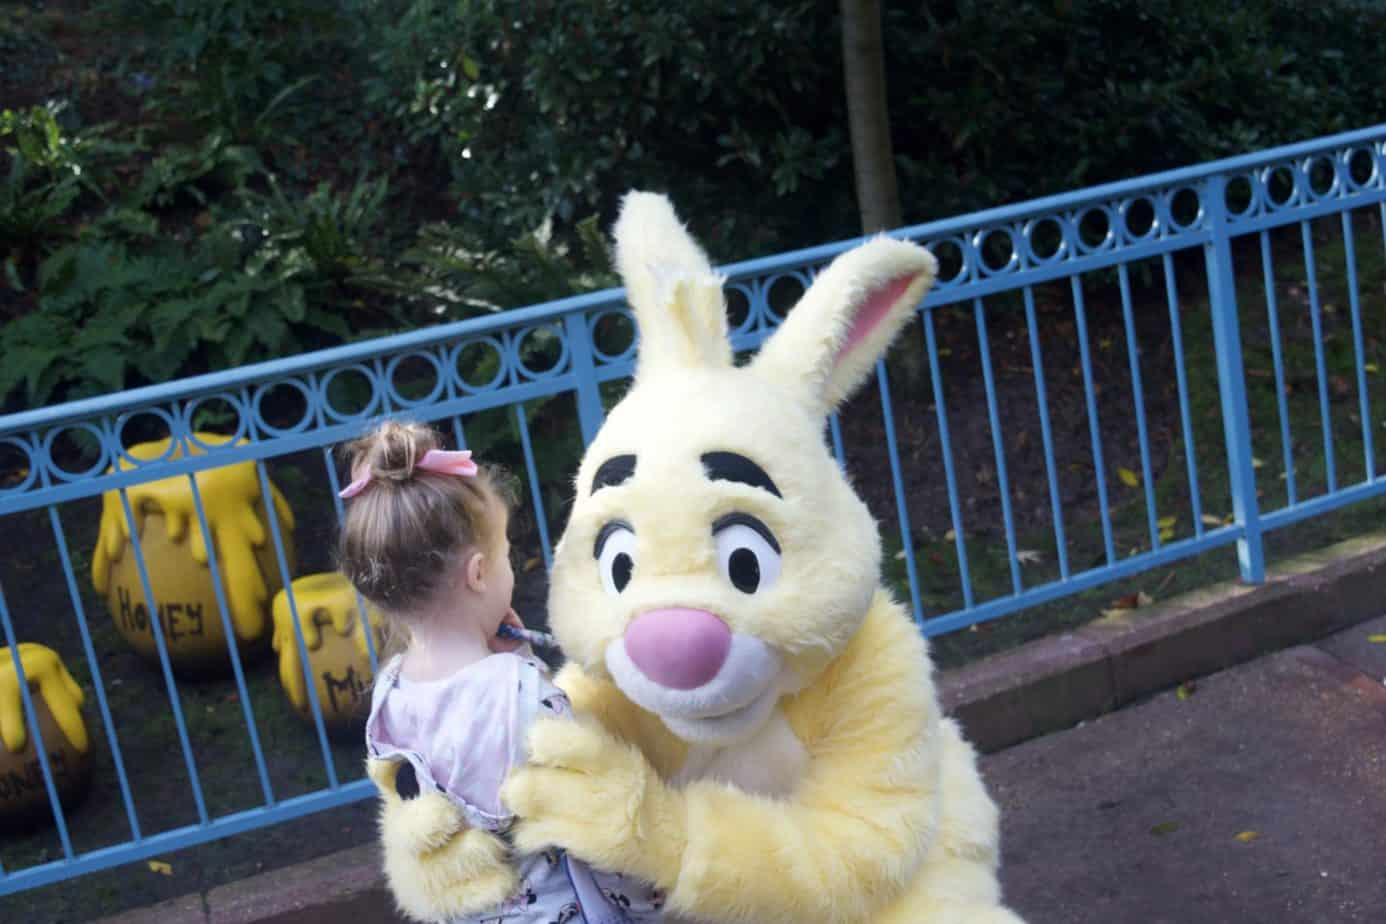 meeting Rabbit from Winnie The Pooh In Disneyland Paris Trip Report